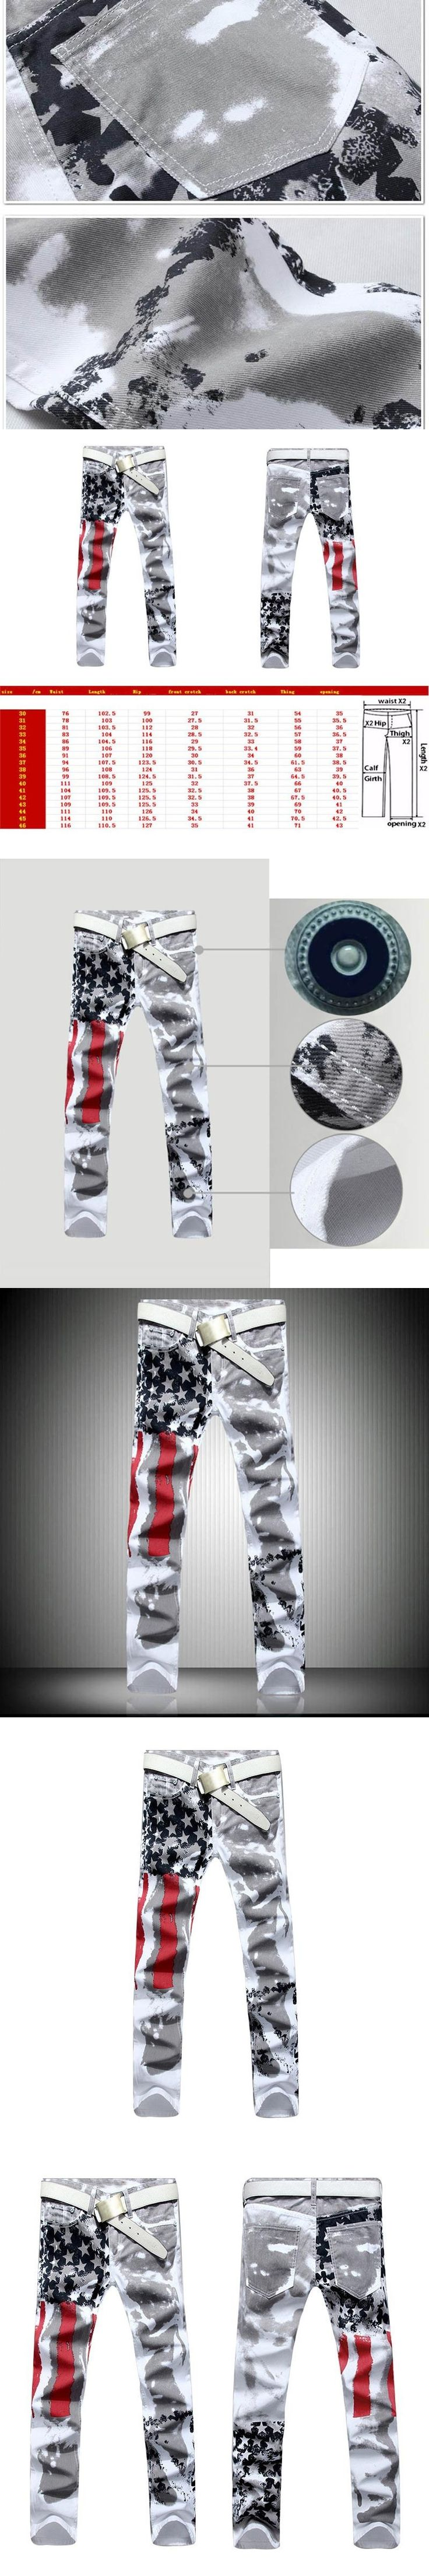 New Arrivals Men American Flag Printing Jeans Casual Slim Fit Stretchy Fashionable Style Washed Male Straight Pants Trousers